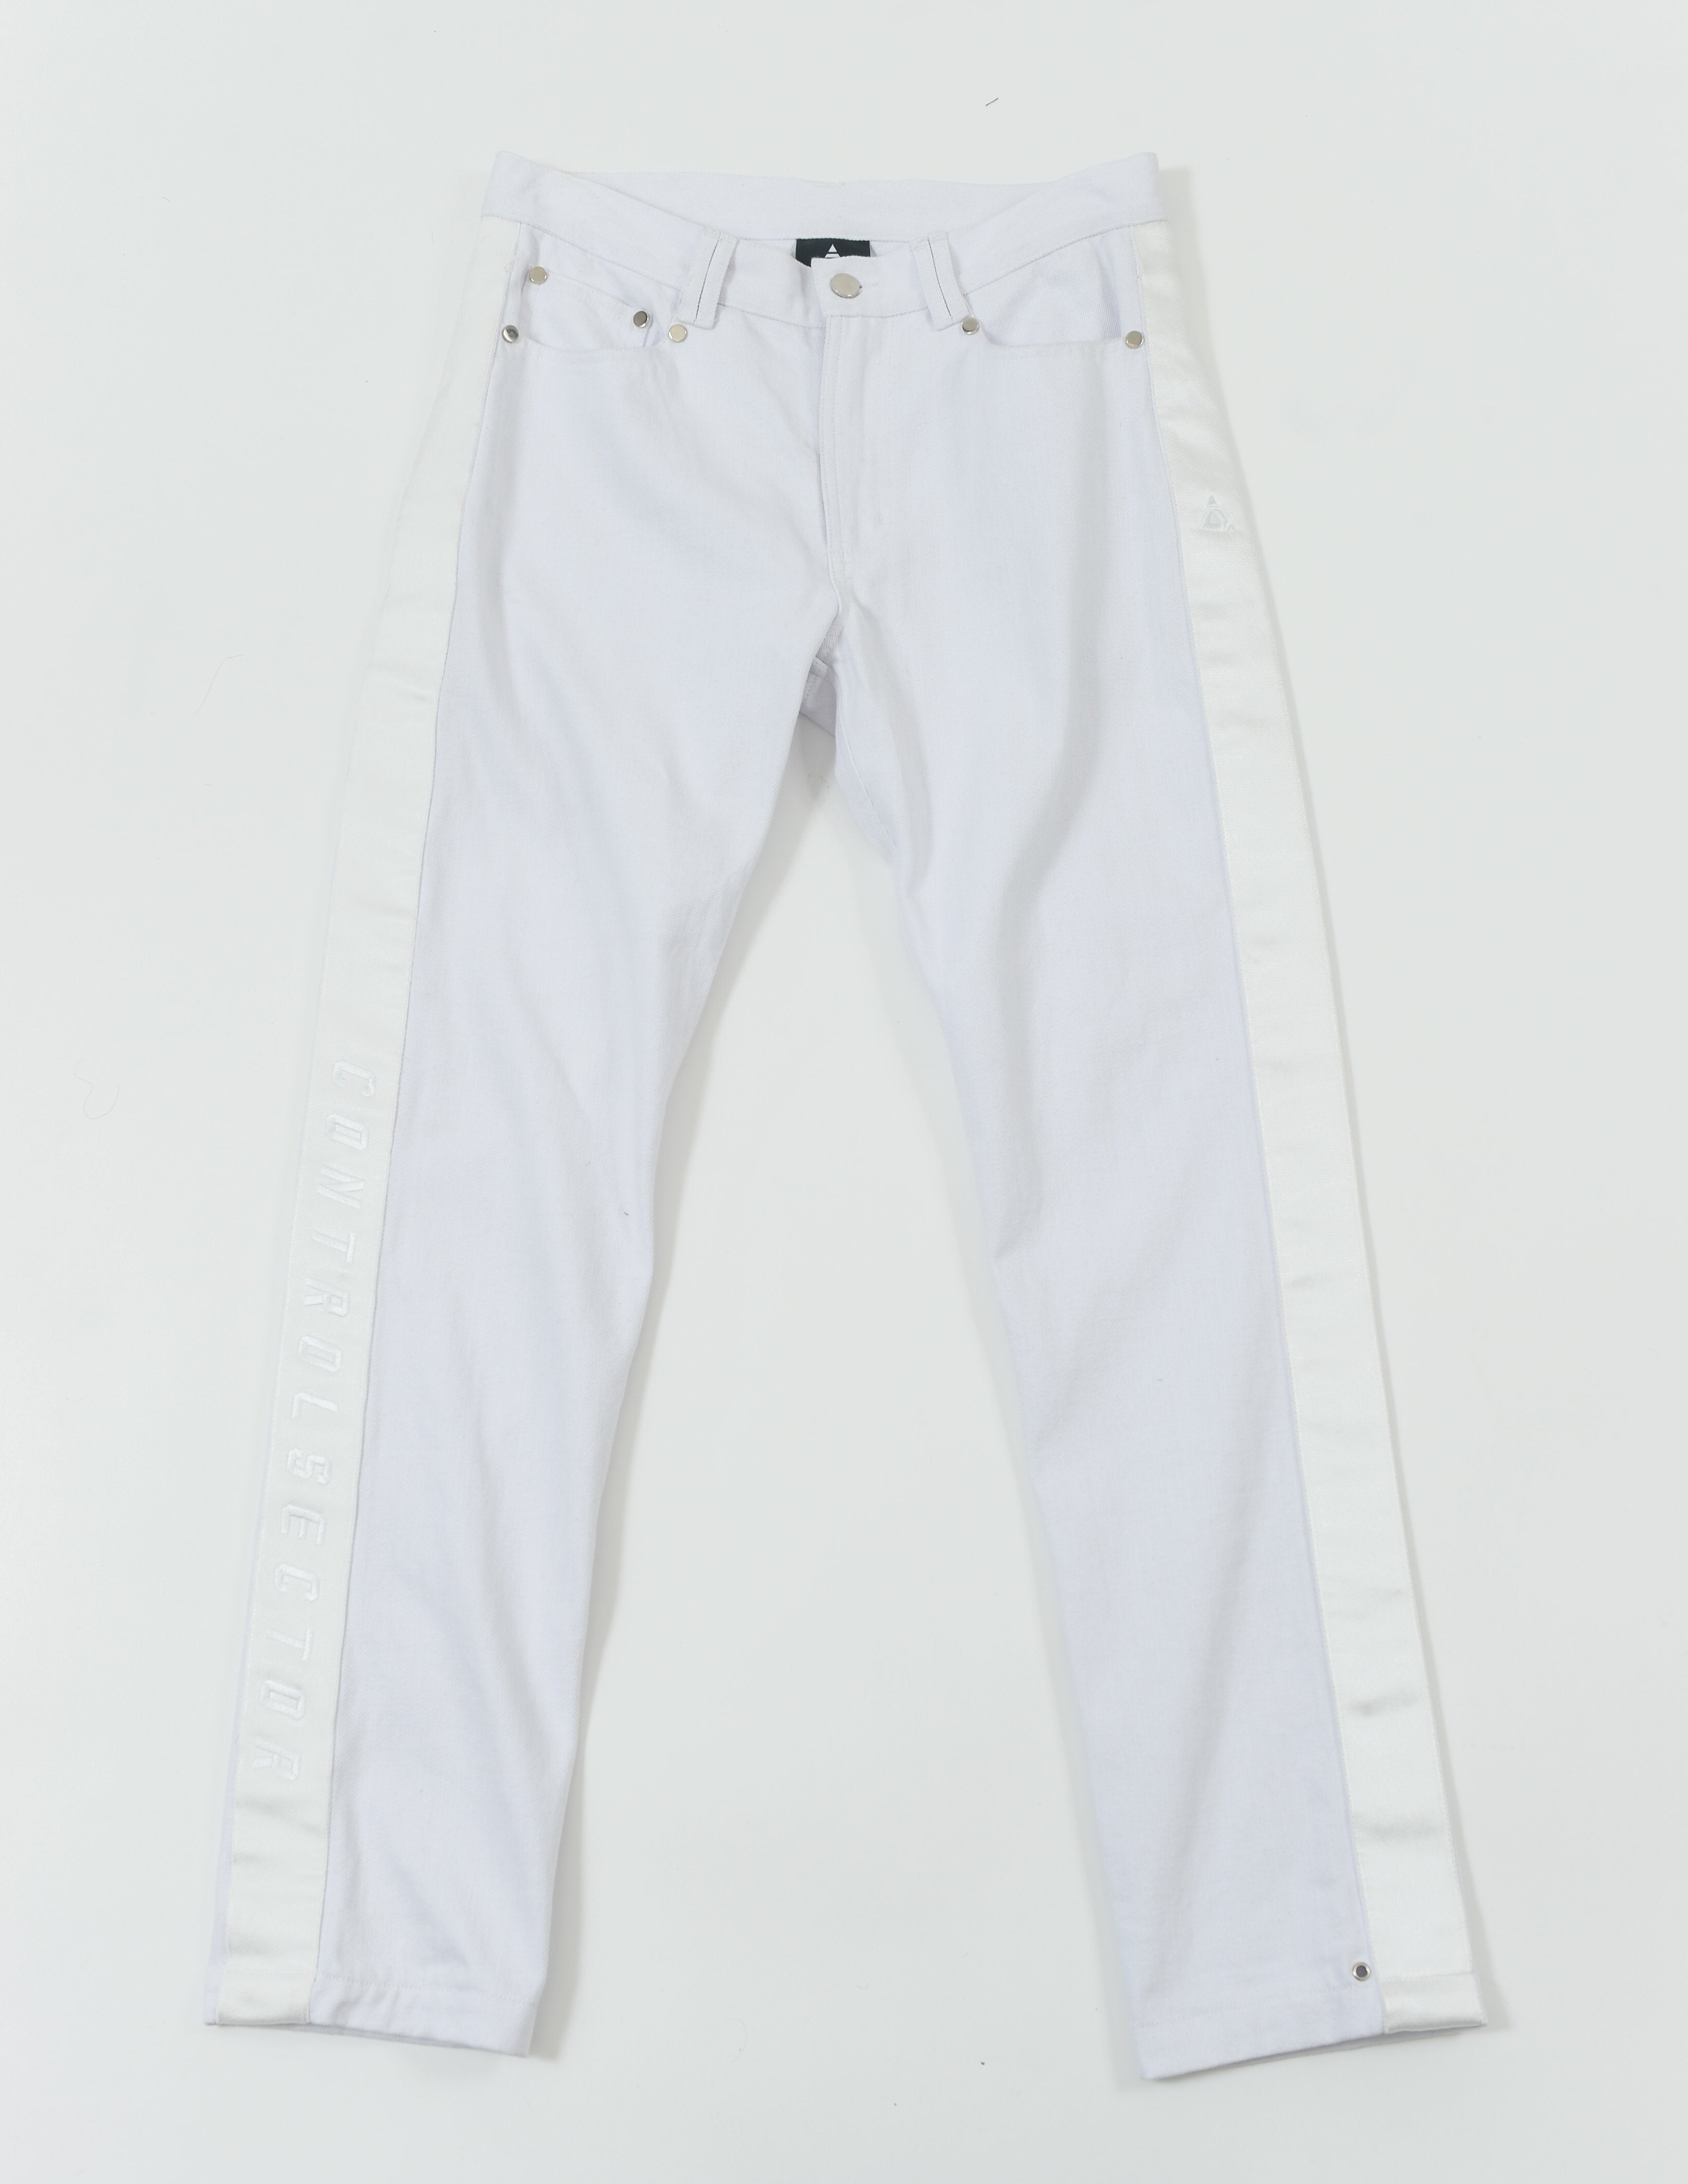 CON1720-01 CHILDREN OF NEVER DENIM - WHITE